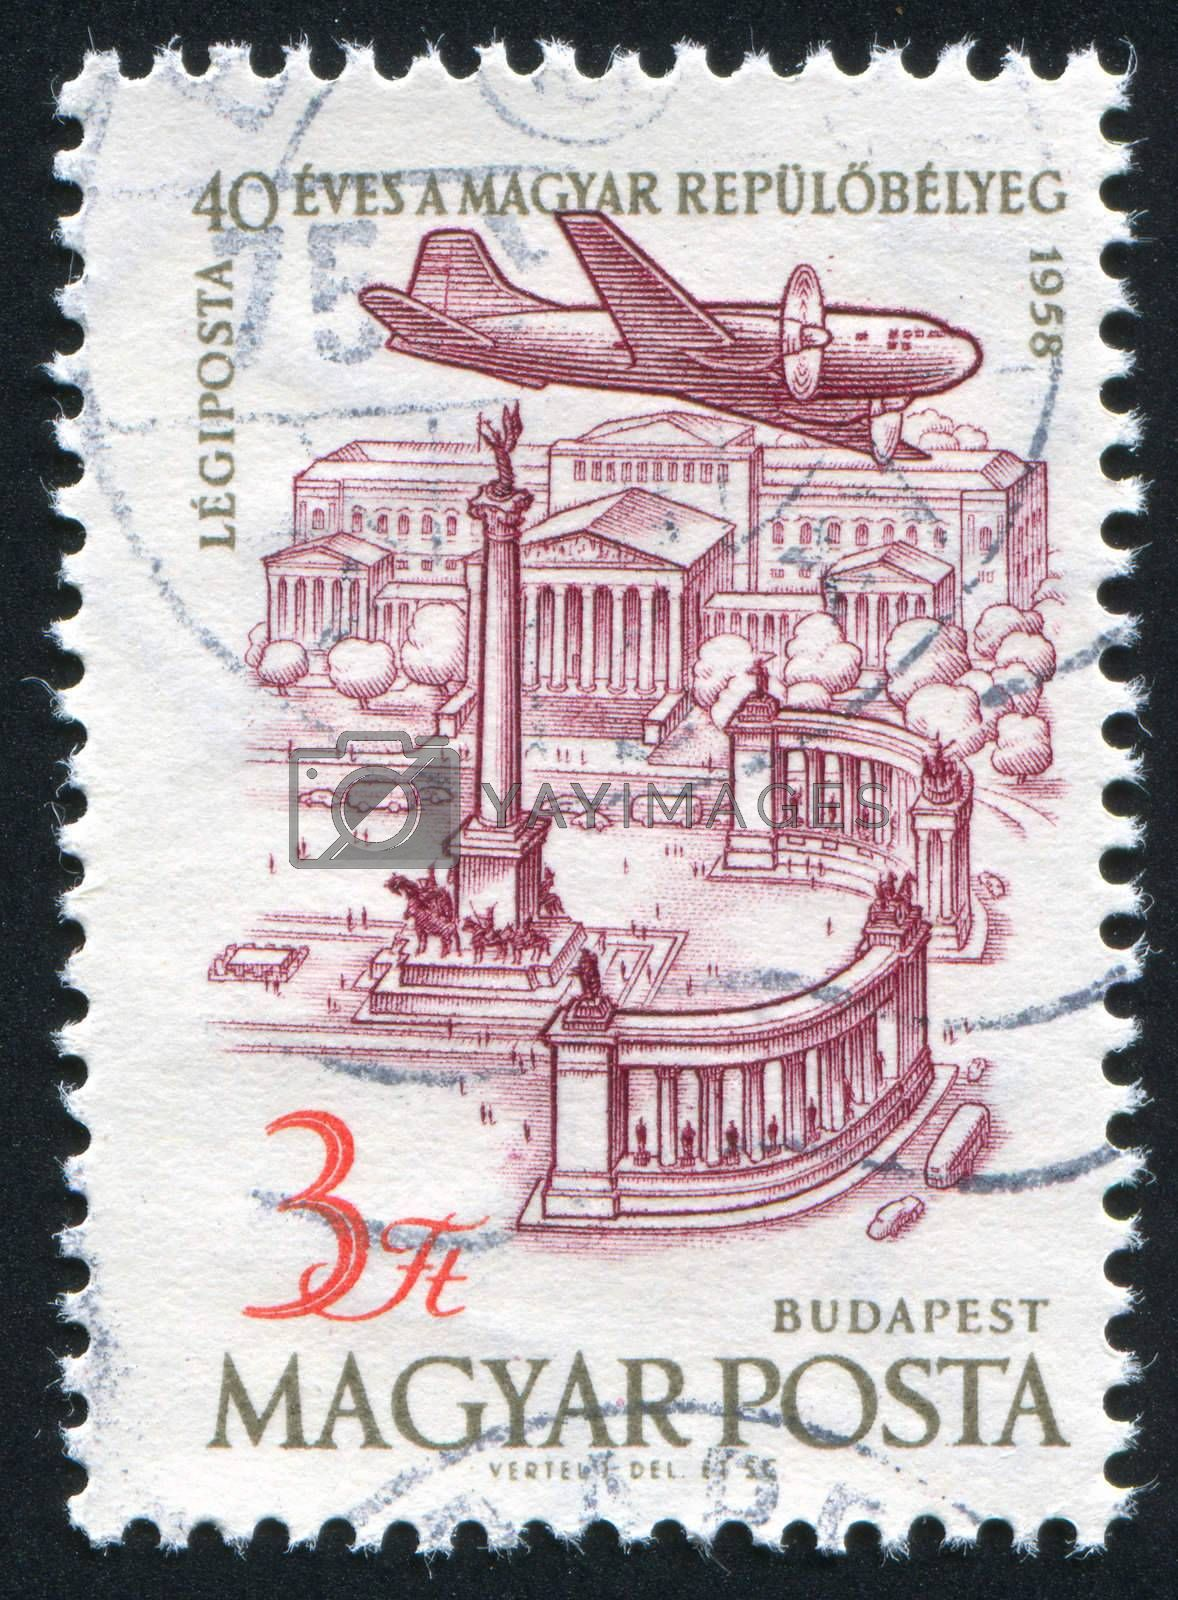 HUNGARY - CIRCA 1958: stamp printed by Hungary, shows Plane over Heroes Square Budapest, circa 1958